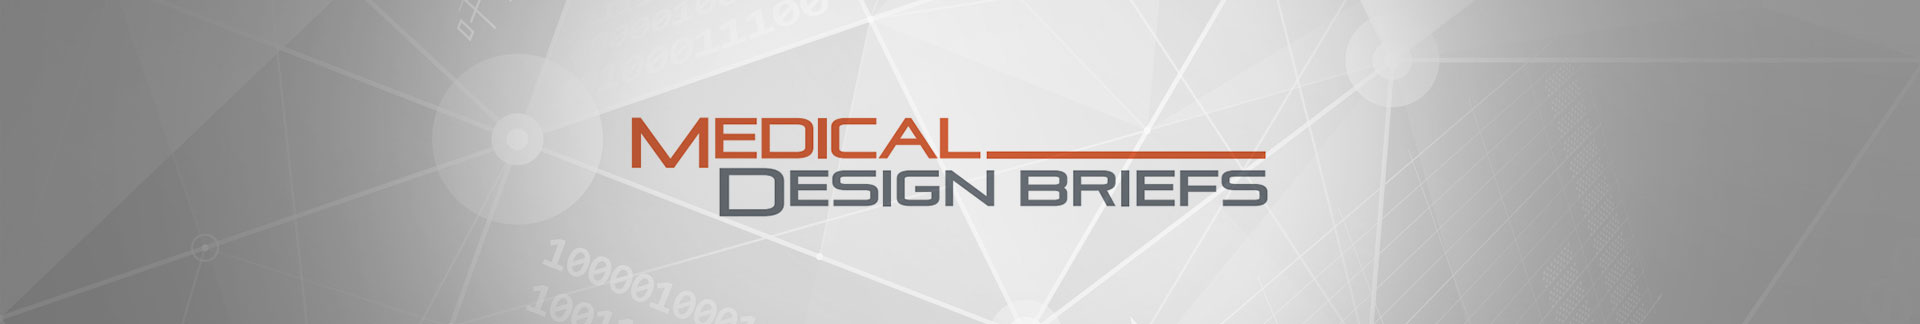 Medical Design Briefs news banner